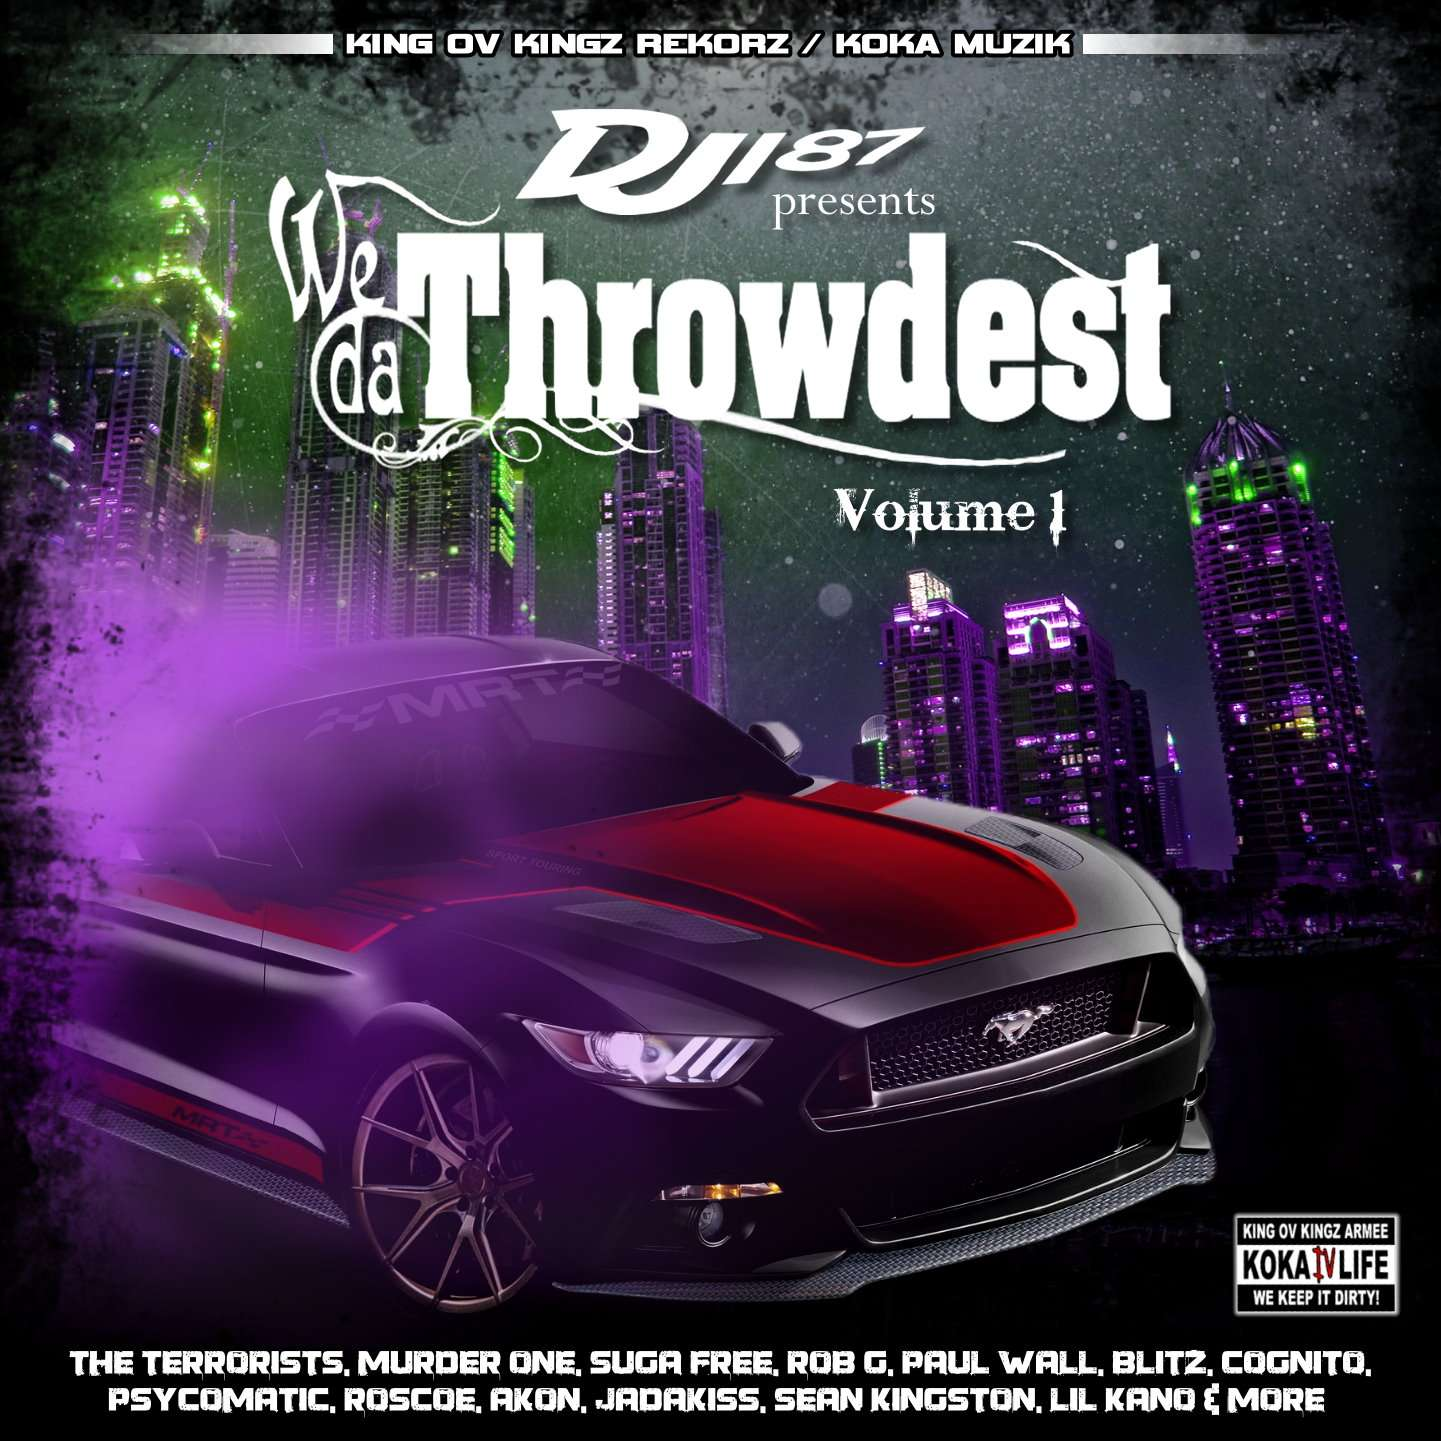 DJ 187 PRESENTS - WE DA THROWDEST VOL. 1 (STREET RAP / HIP HOP)